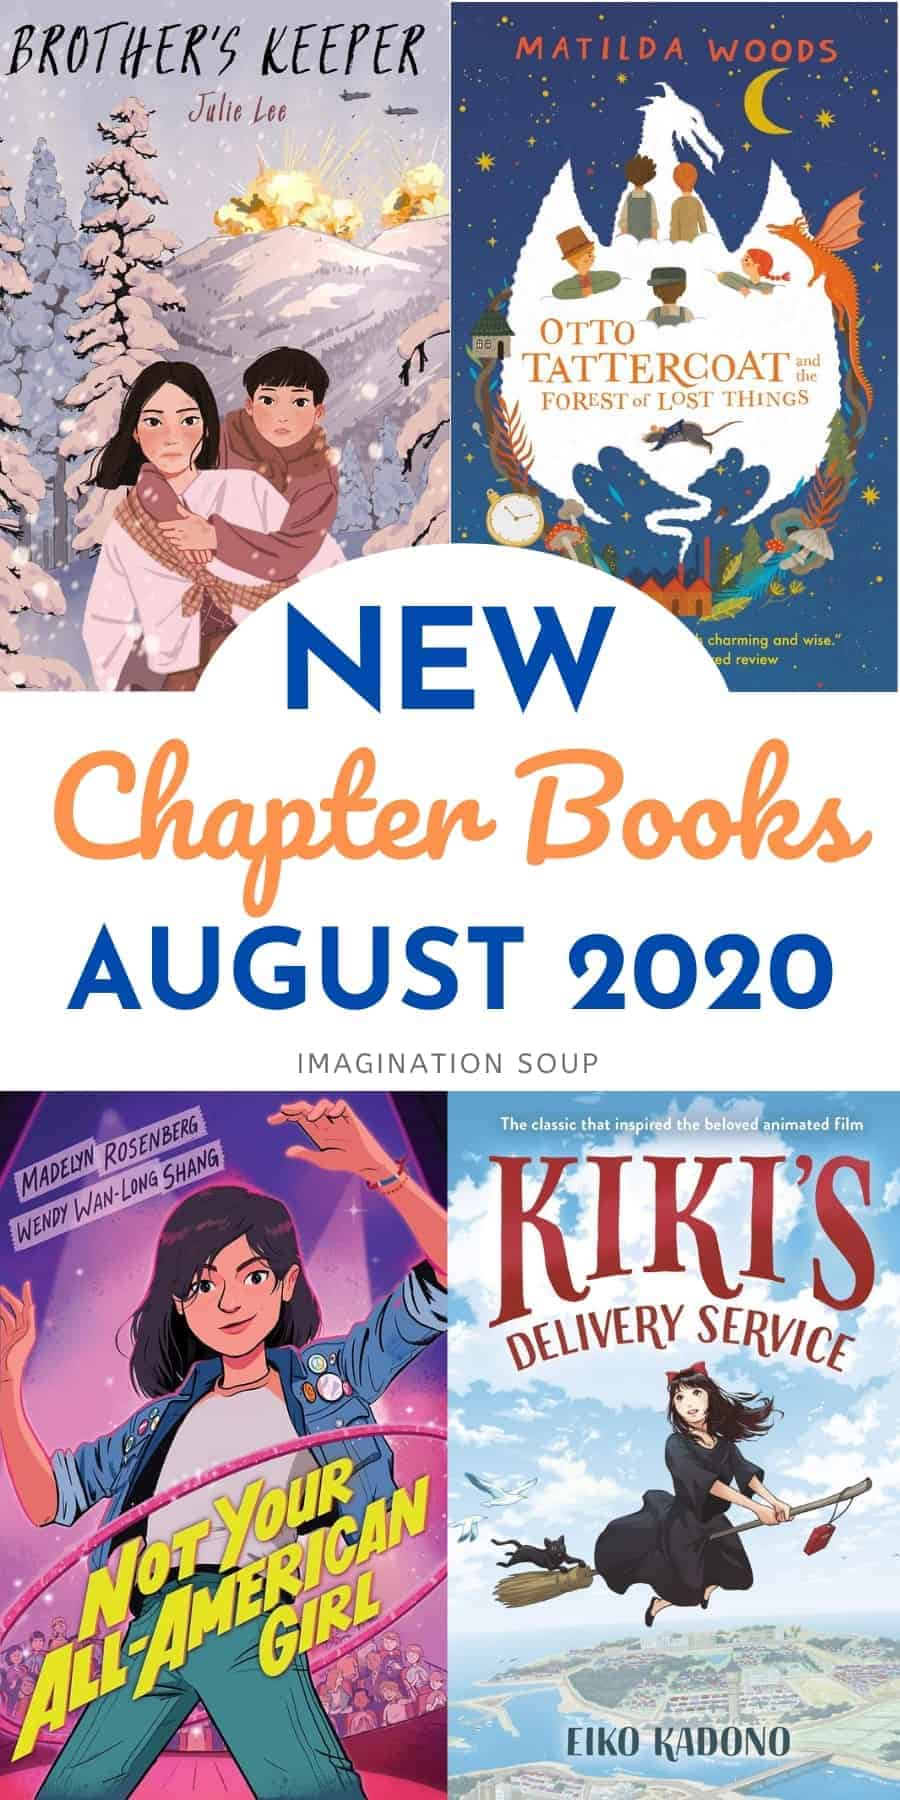 New chapter books August 2020